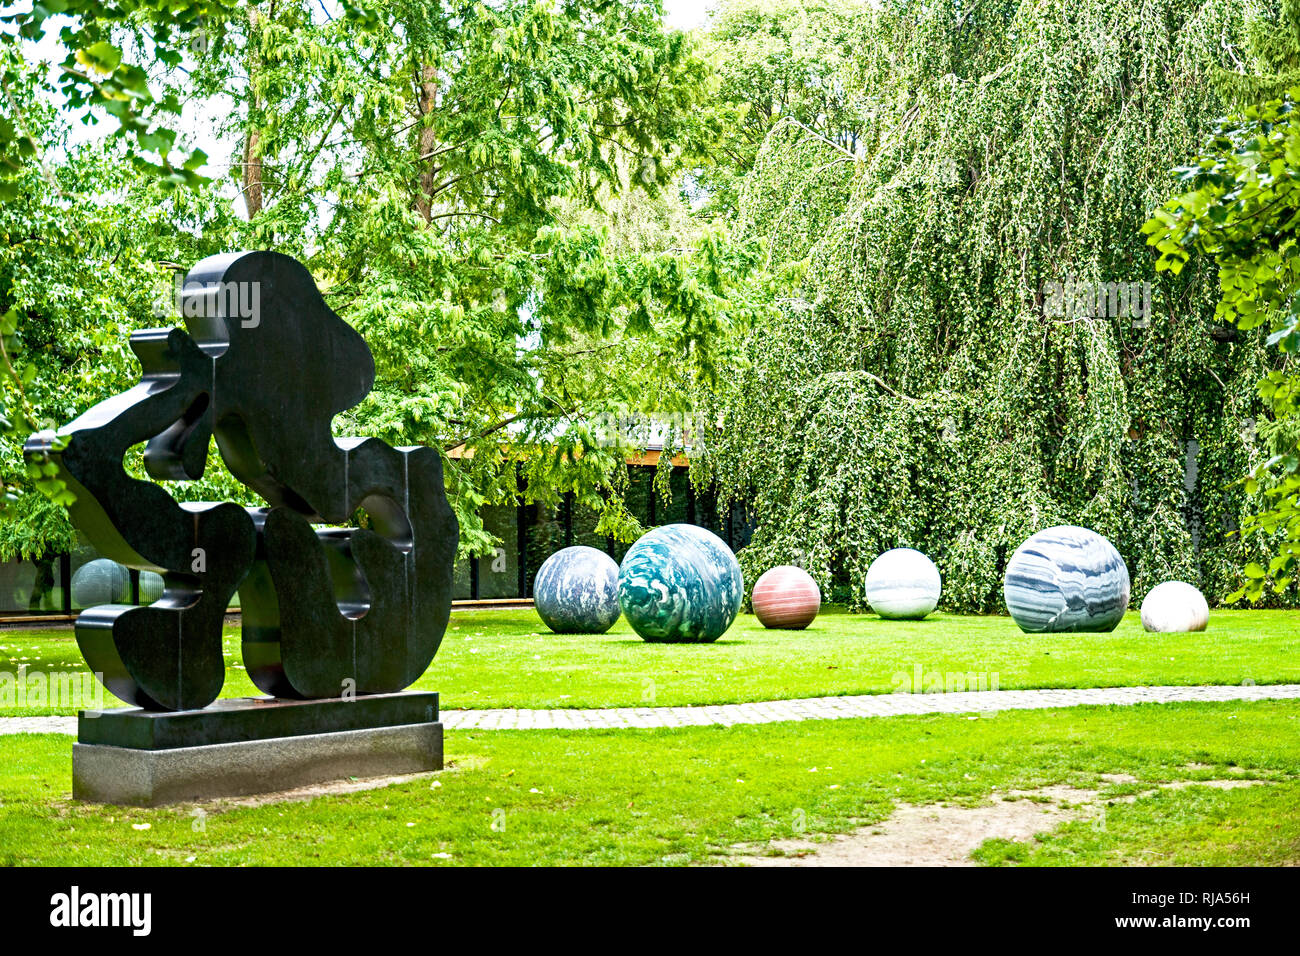 Humlebaek (Denmark): Louisiana Museum of Modern Art, located on the shore of the Øresund - Stock Image